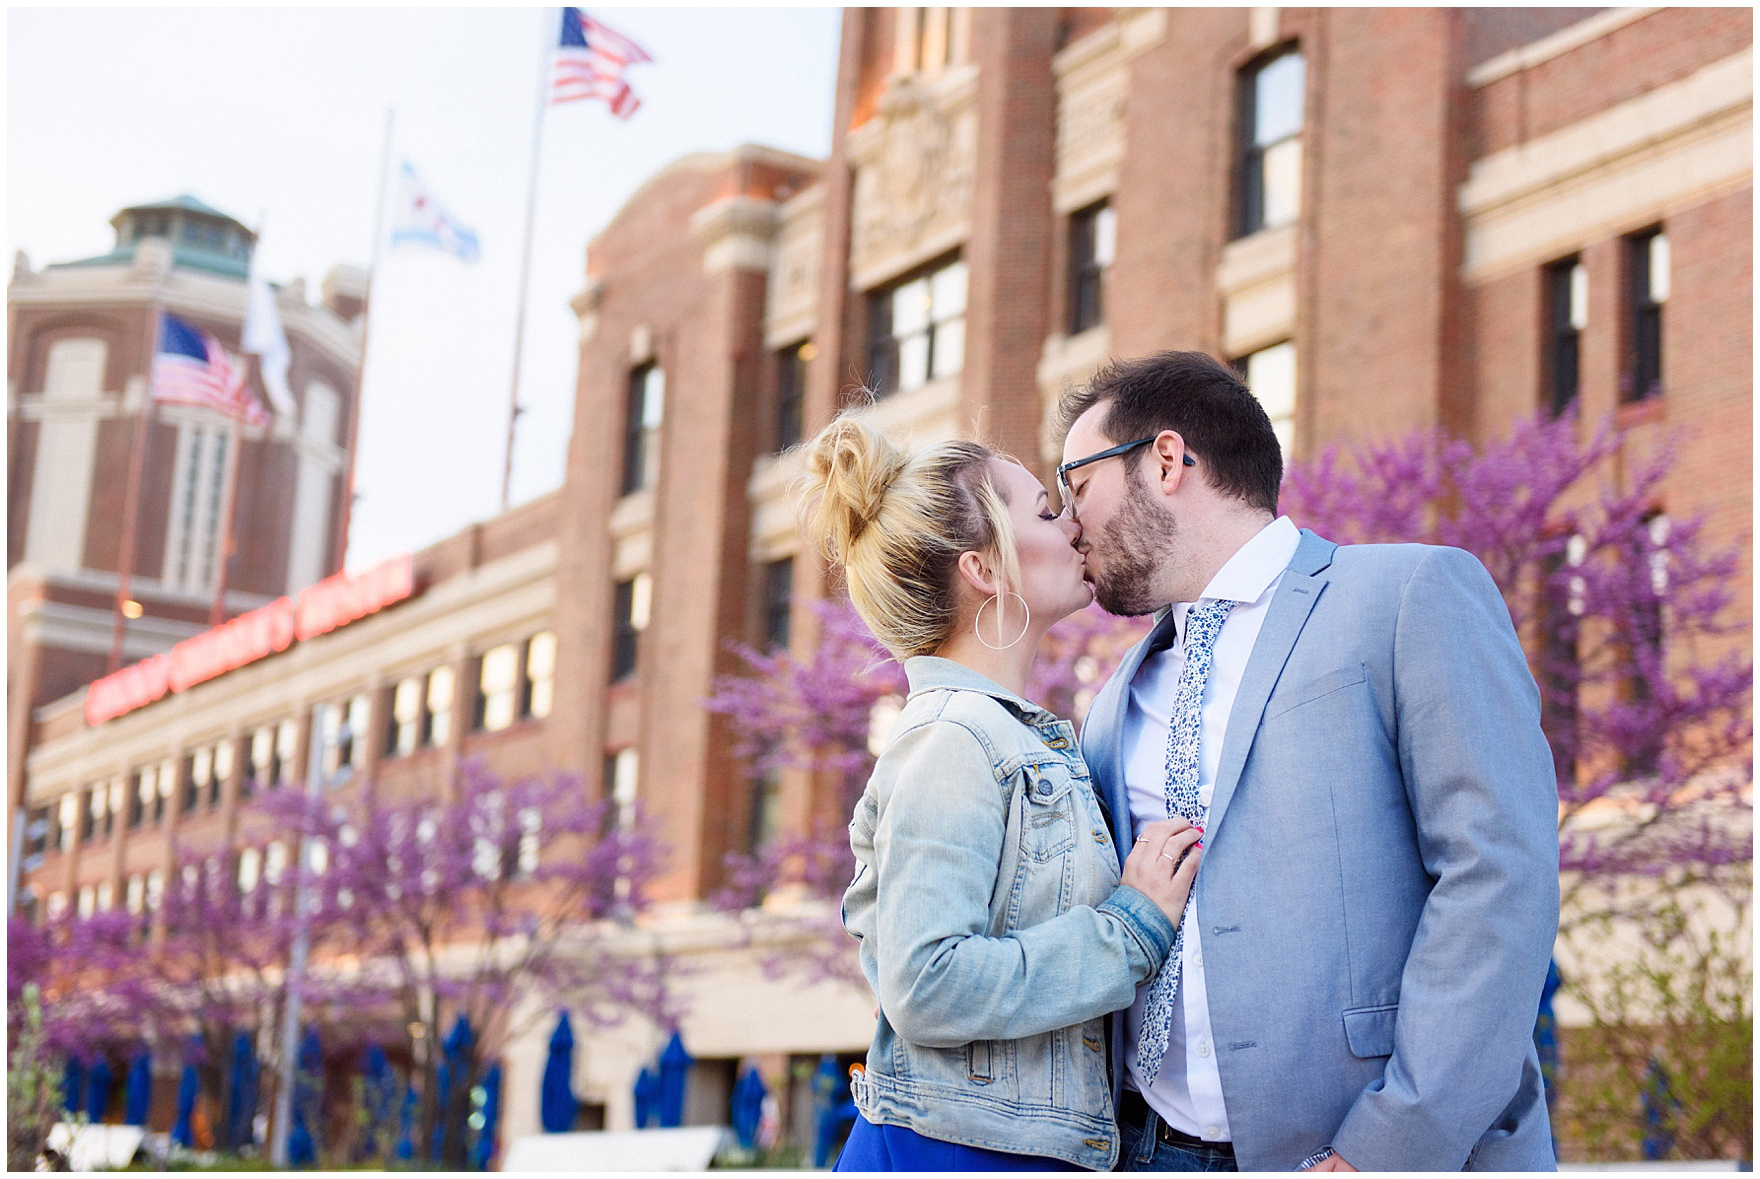 A couple kisses in front of the main pier building during a Chicago Navy Pier engagement photography session.